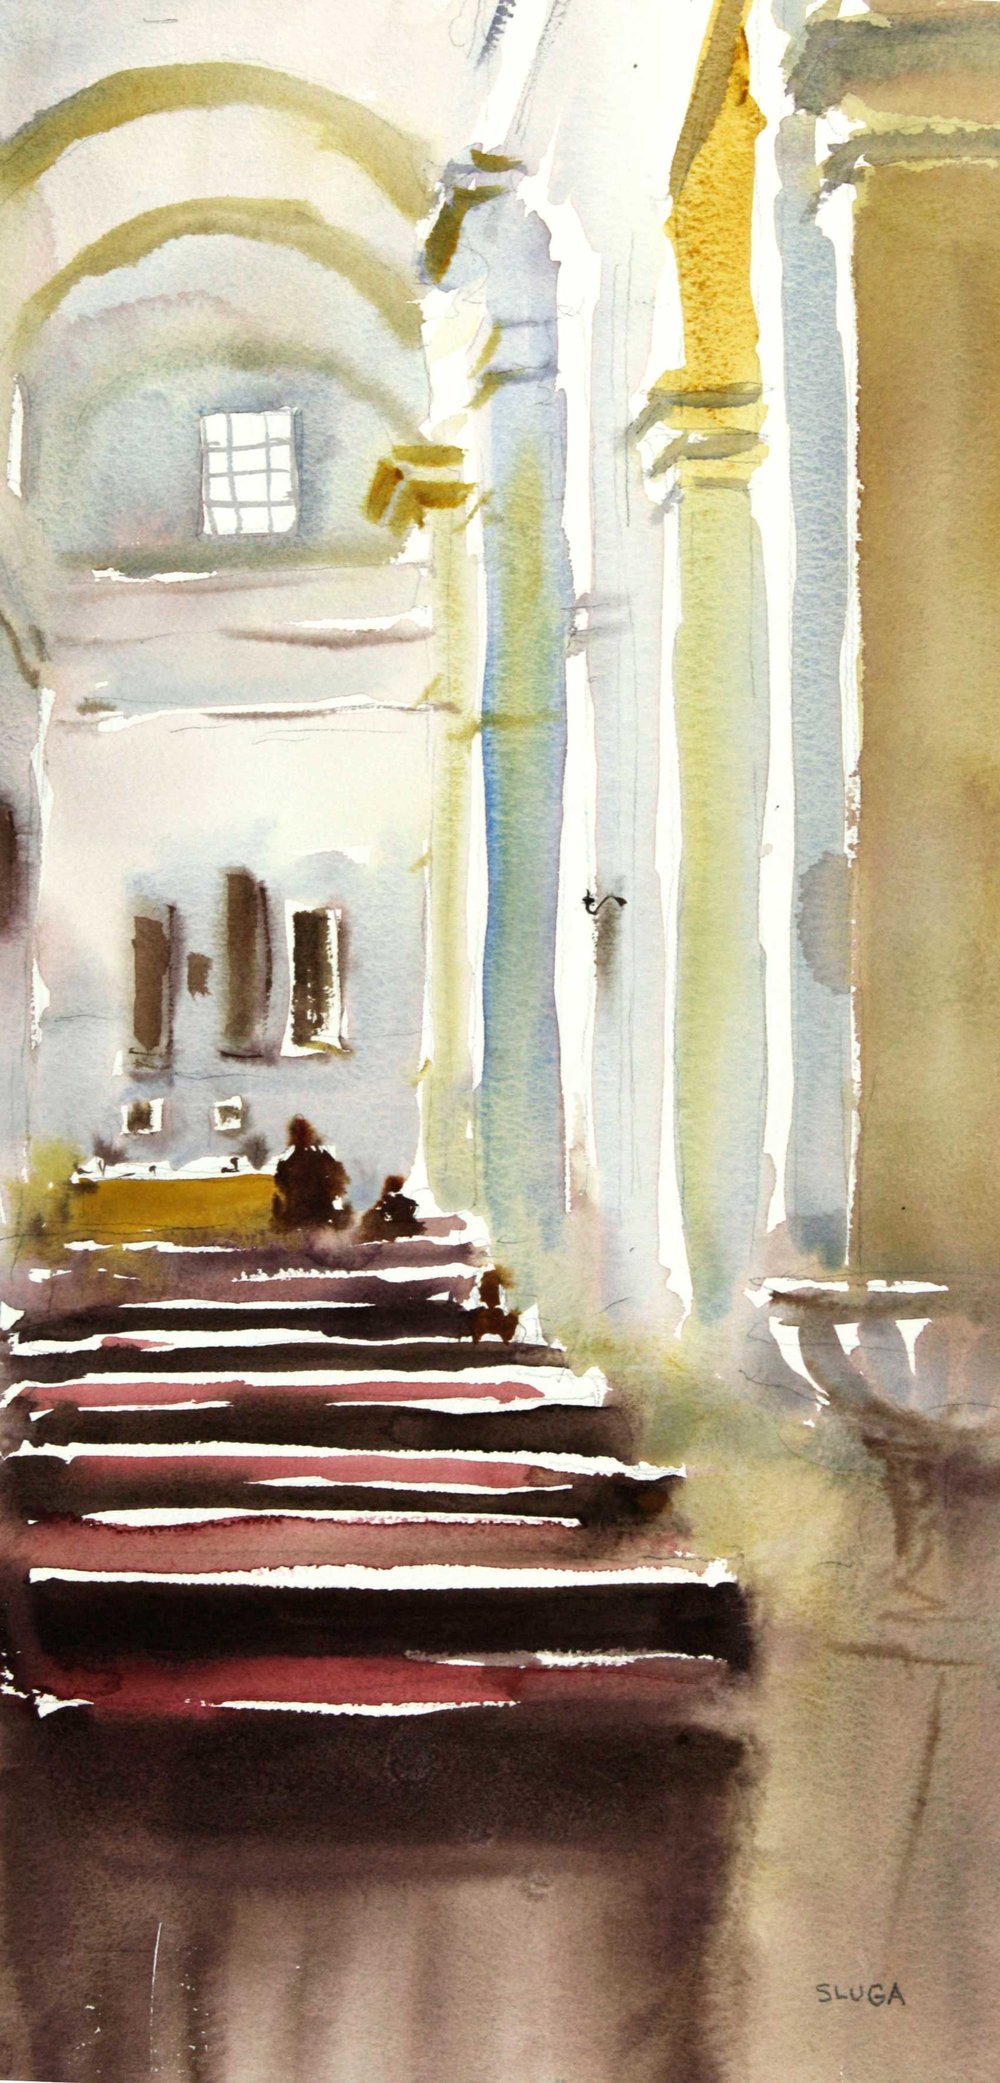 Sunday Church 28 x 55 cm